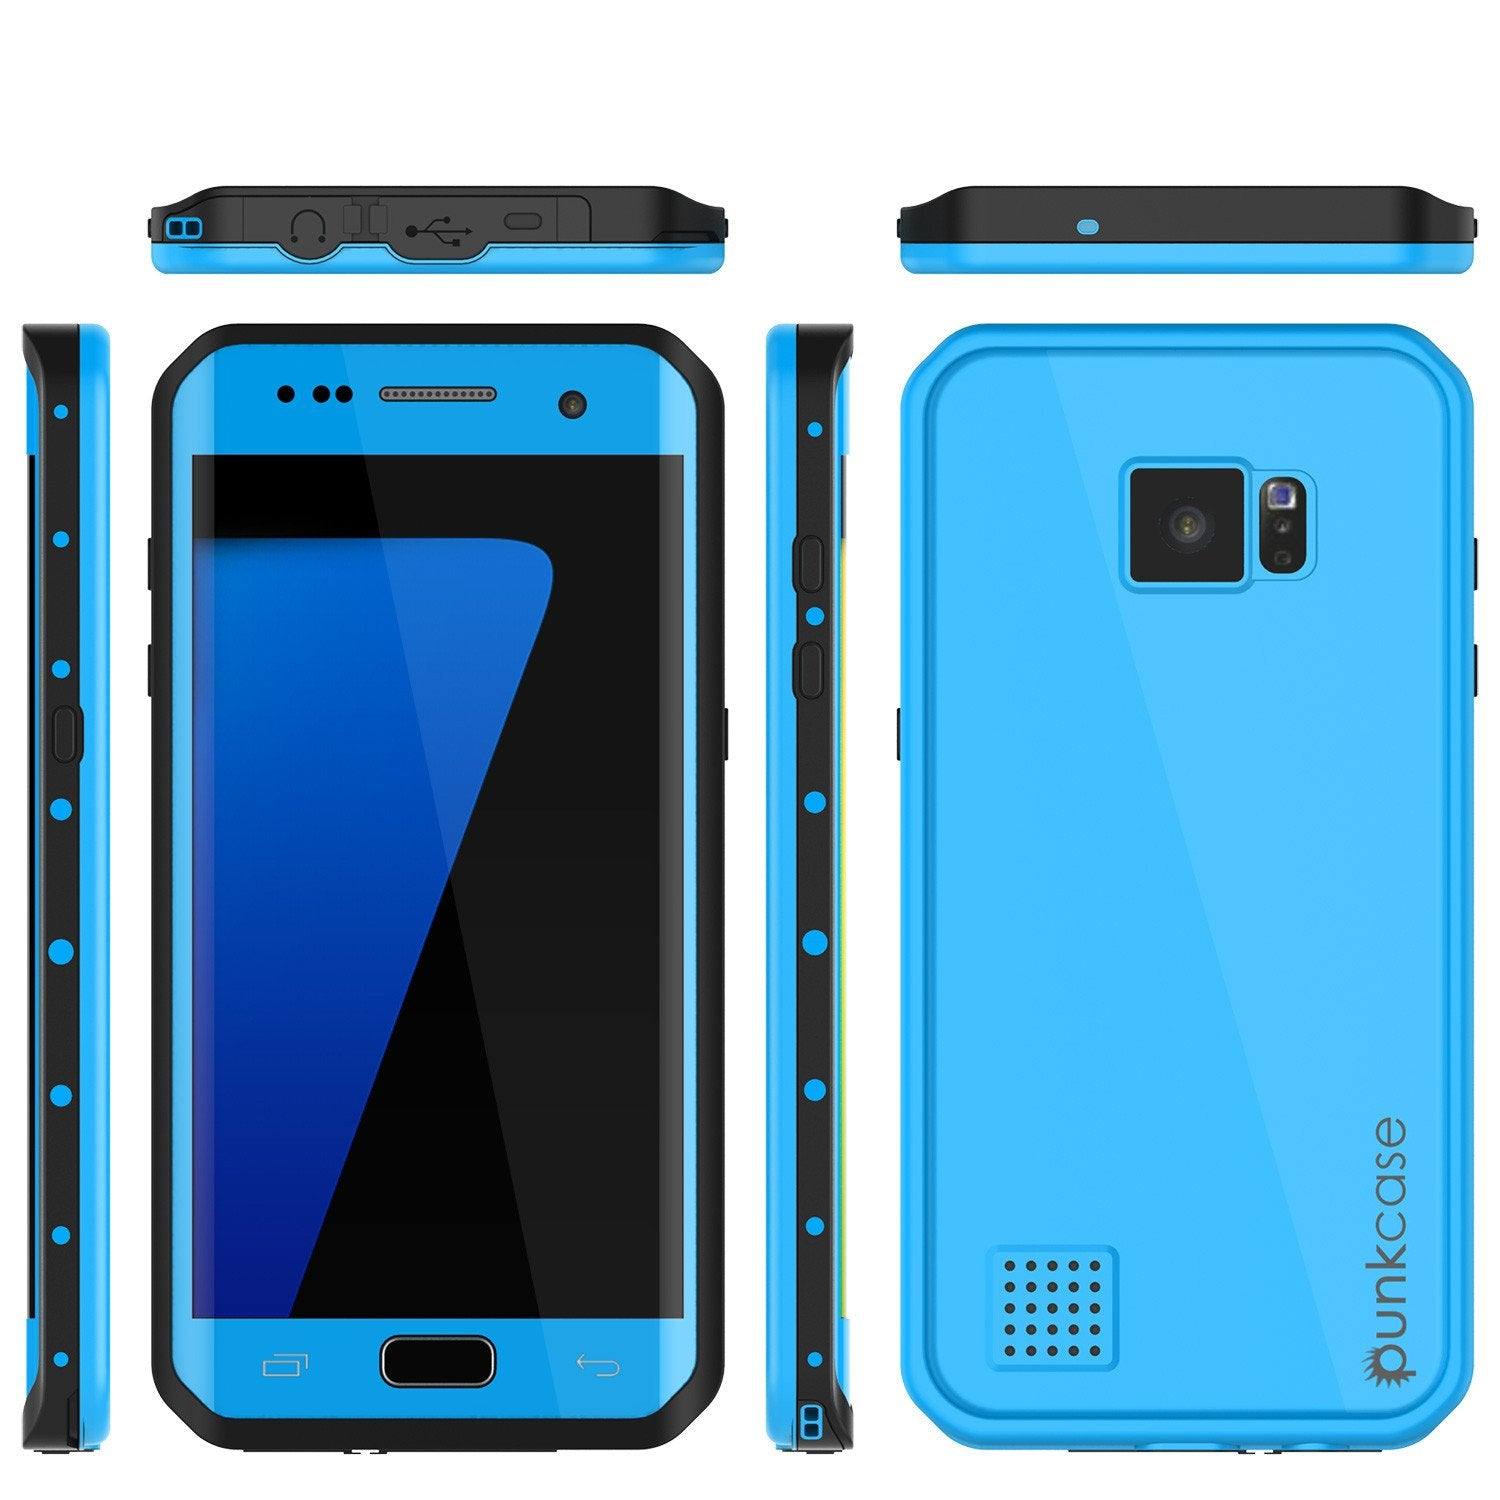 Galaxy S7 EDGE Waterproof Case PunkCase StudStar Light Blue Thin 6.6ft Underwater IP68 ShockProof - PunkCase NZ